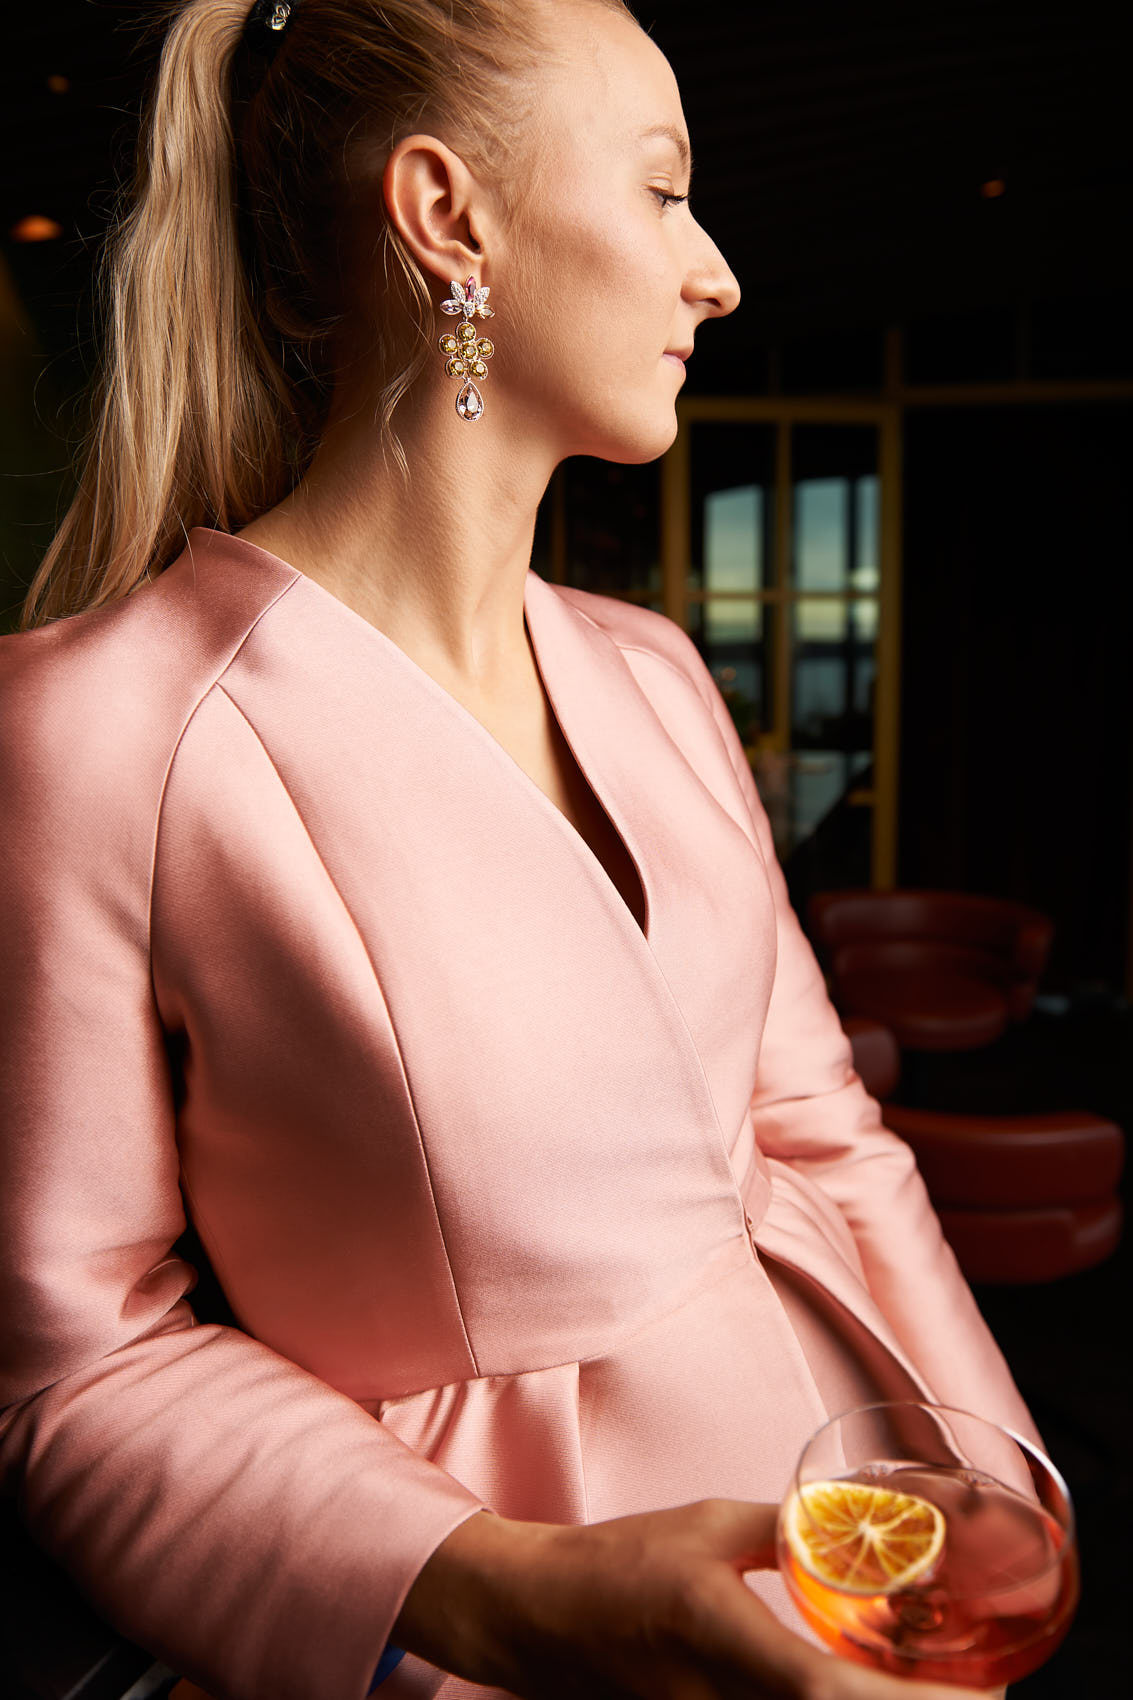 Høyer pink party suit with earrings and cocktail photo by Marcel Tiedje